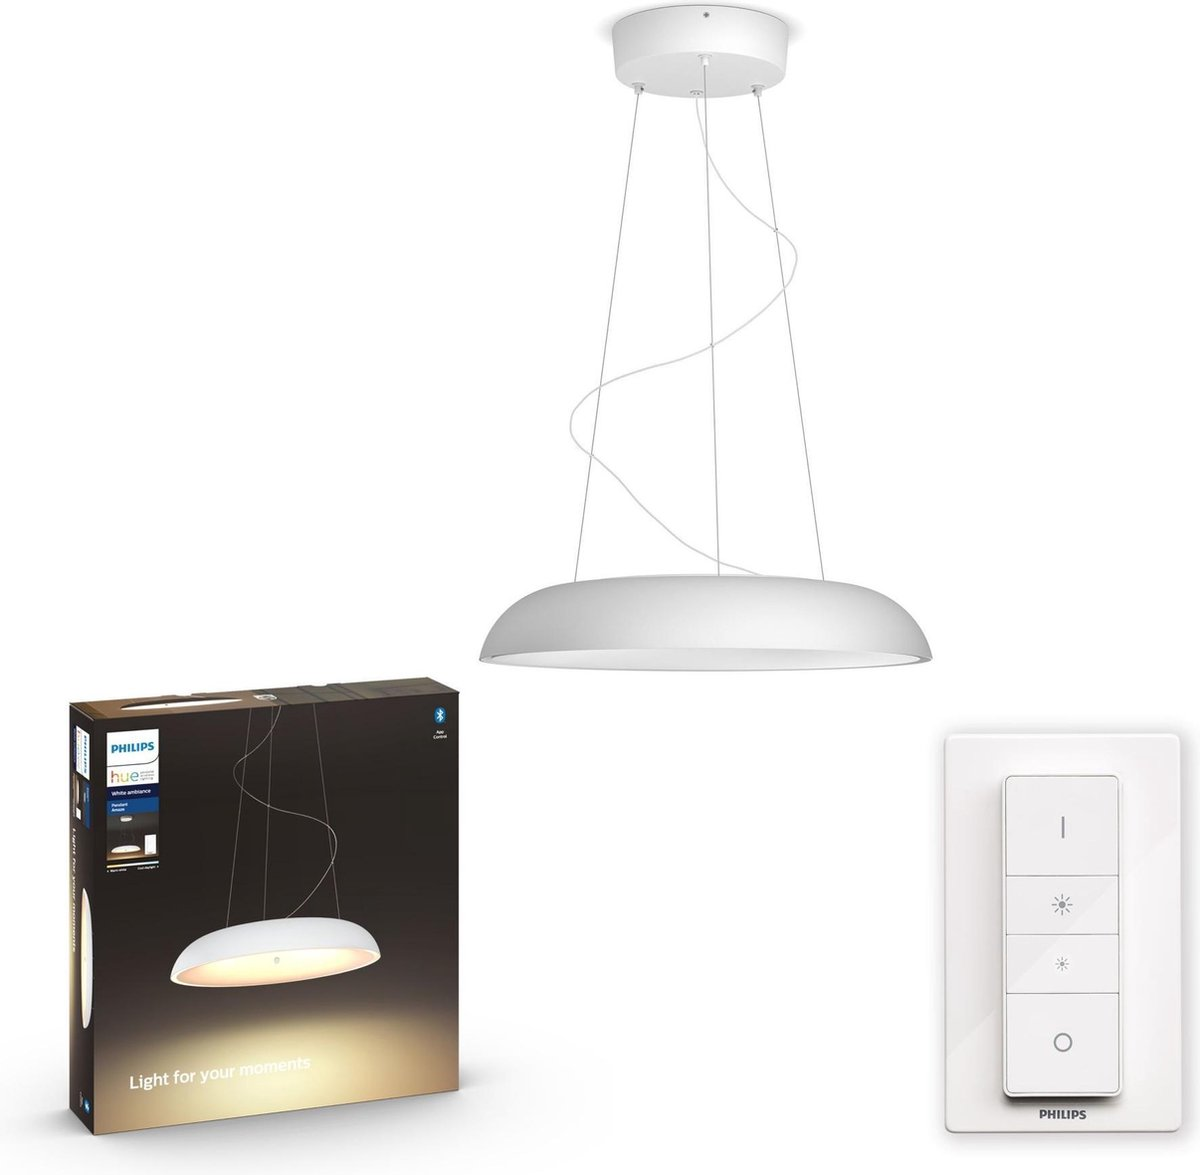 Philips Hue Amaze Pendant Hanglamp - White Ambiance - Wit - Bluetooth - Inclusief Dimmer Switch